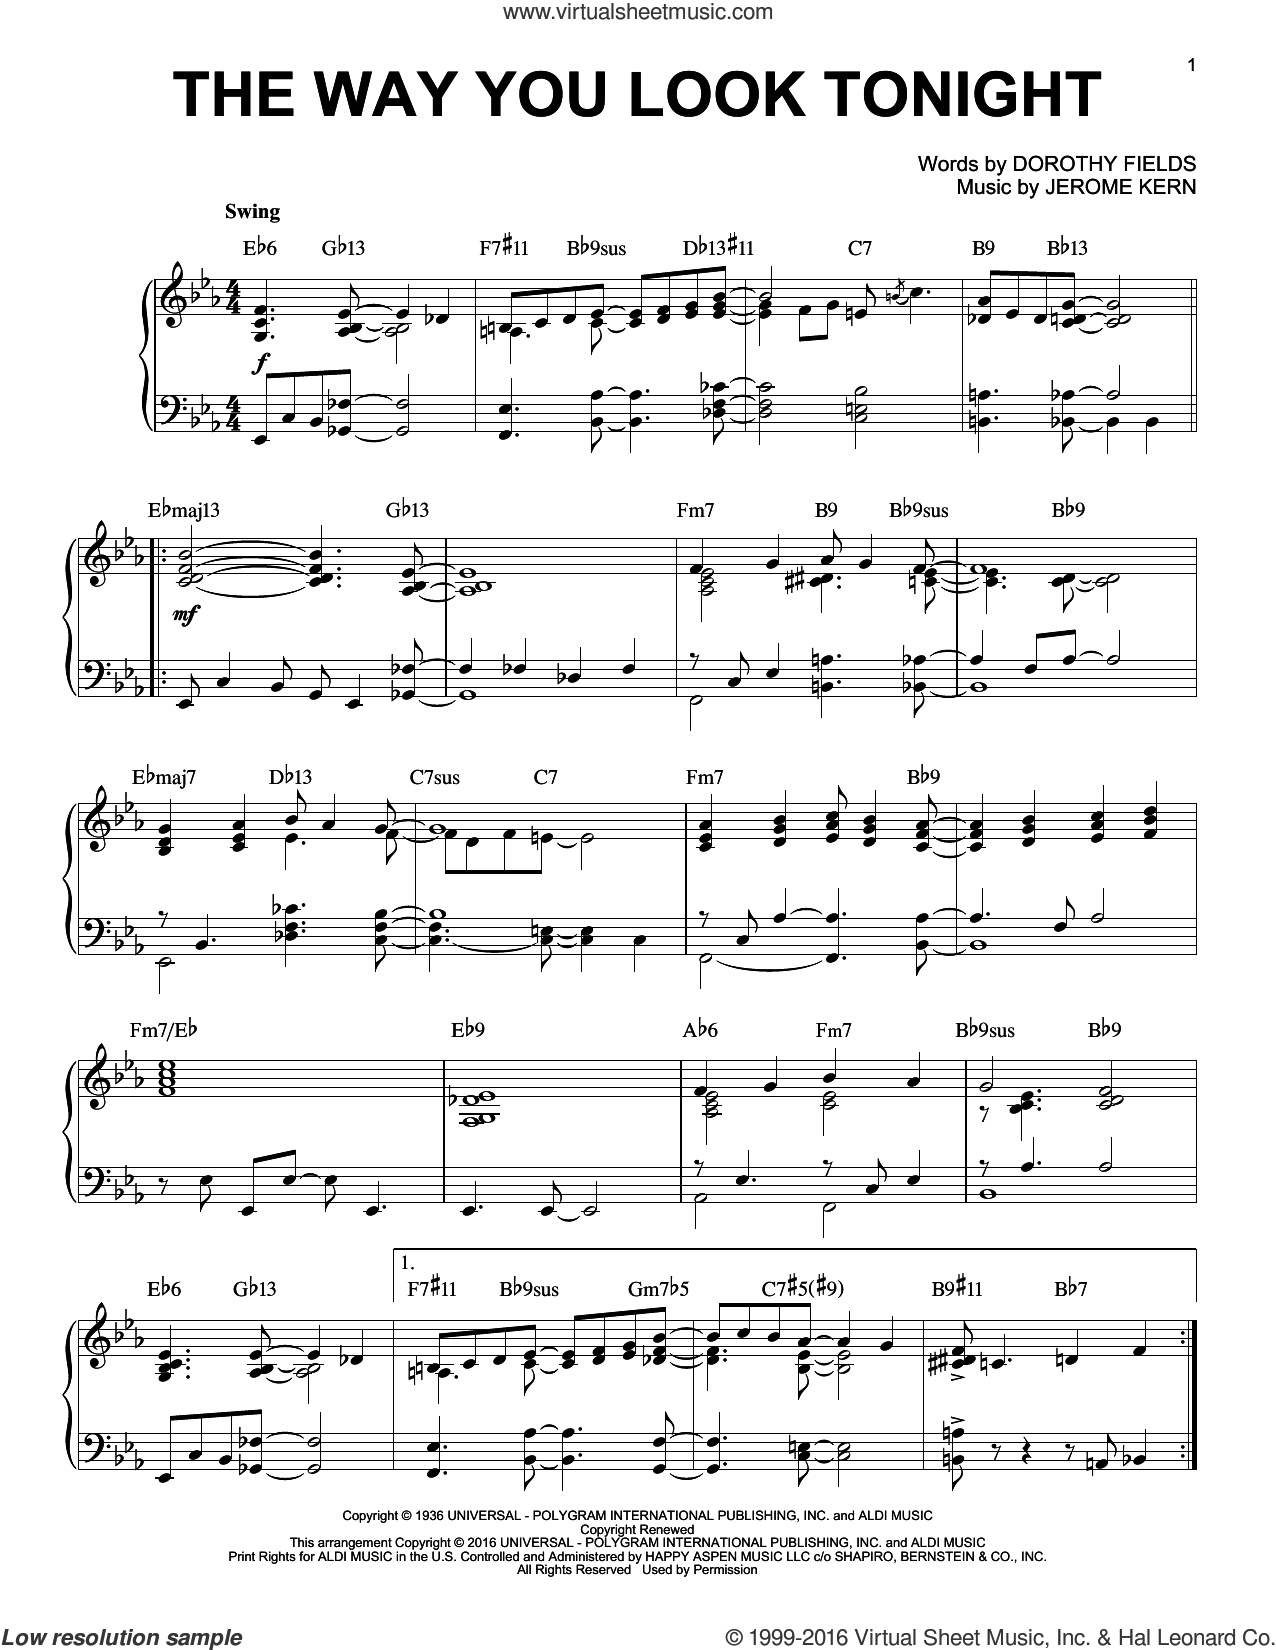 The Way You Look Tonight [Jazz version] (arr. Brent Edstrom) sheet music for piano solo by Jerome Kern and Dorothy Fields, wedding score, intermediate skill level